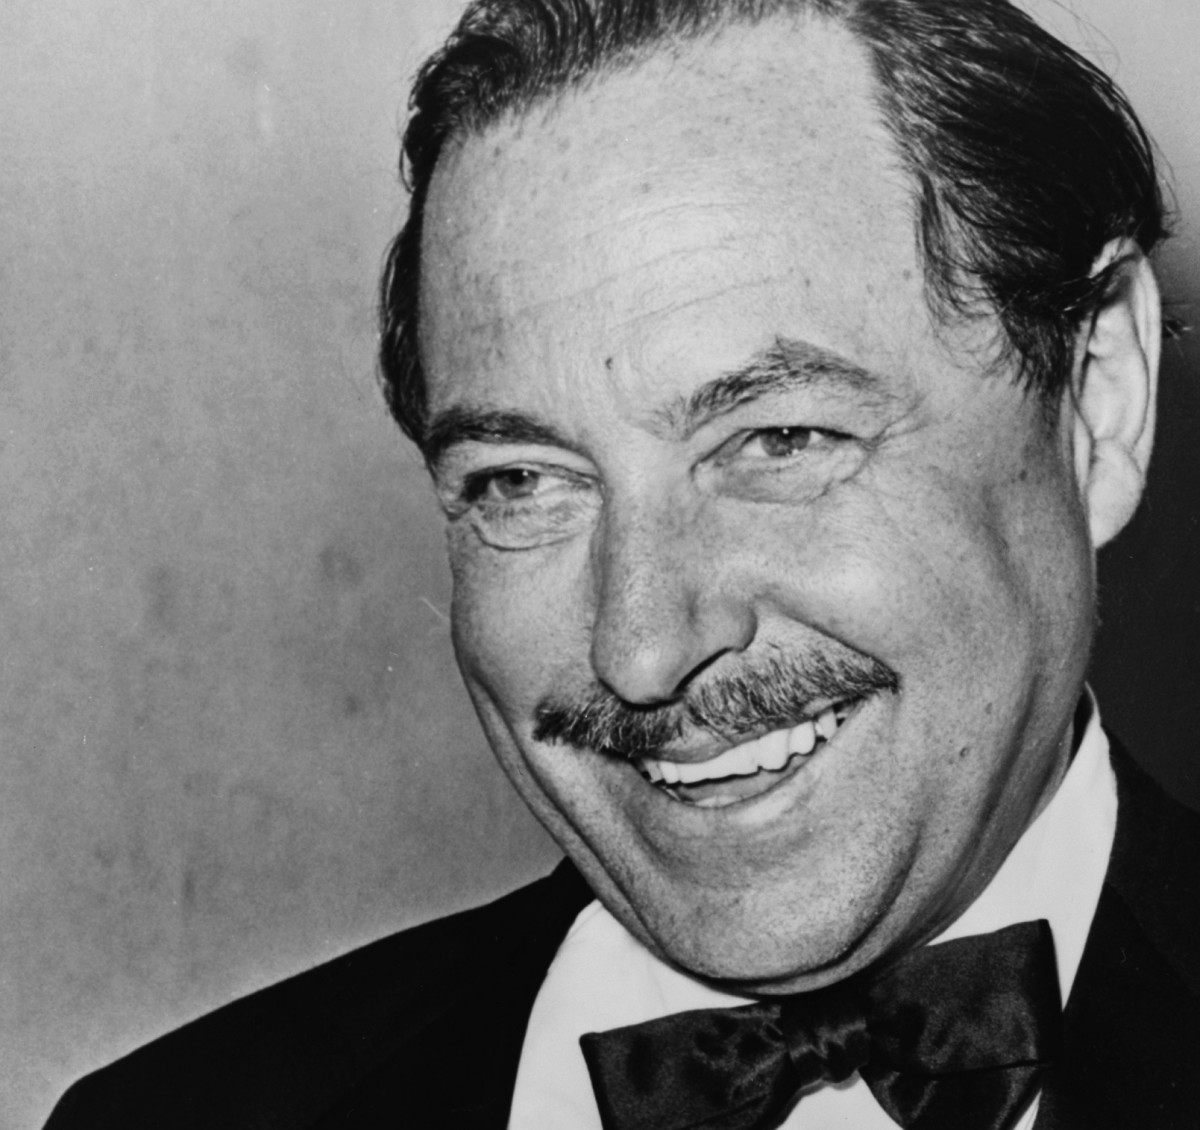 tennessee williams new orleans the city that was his muse tennessee williams new orleans the city that was his muse com